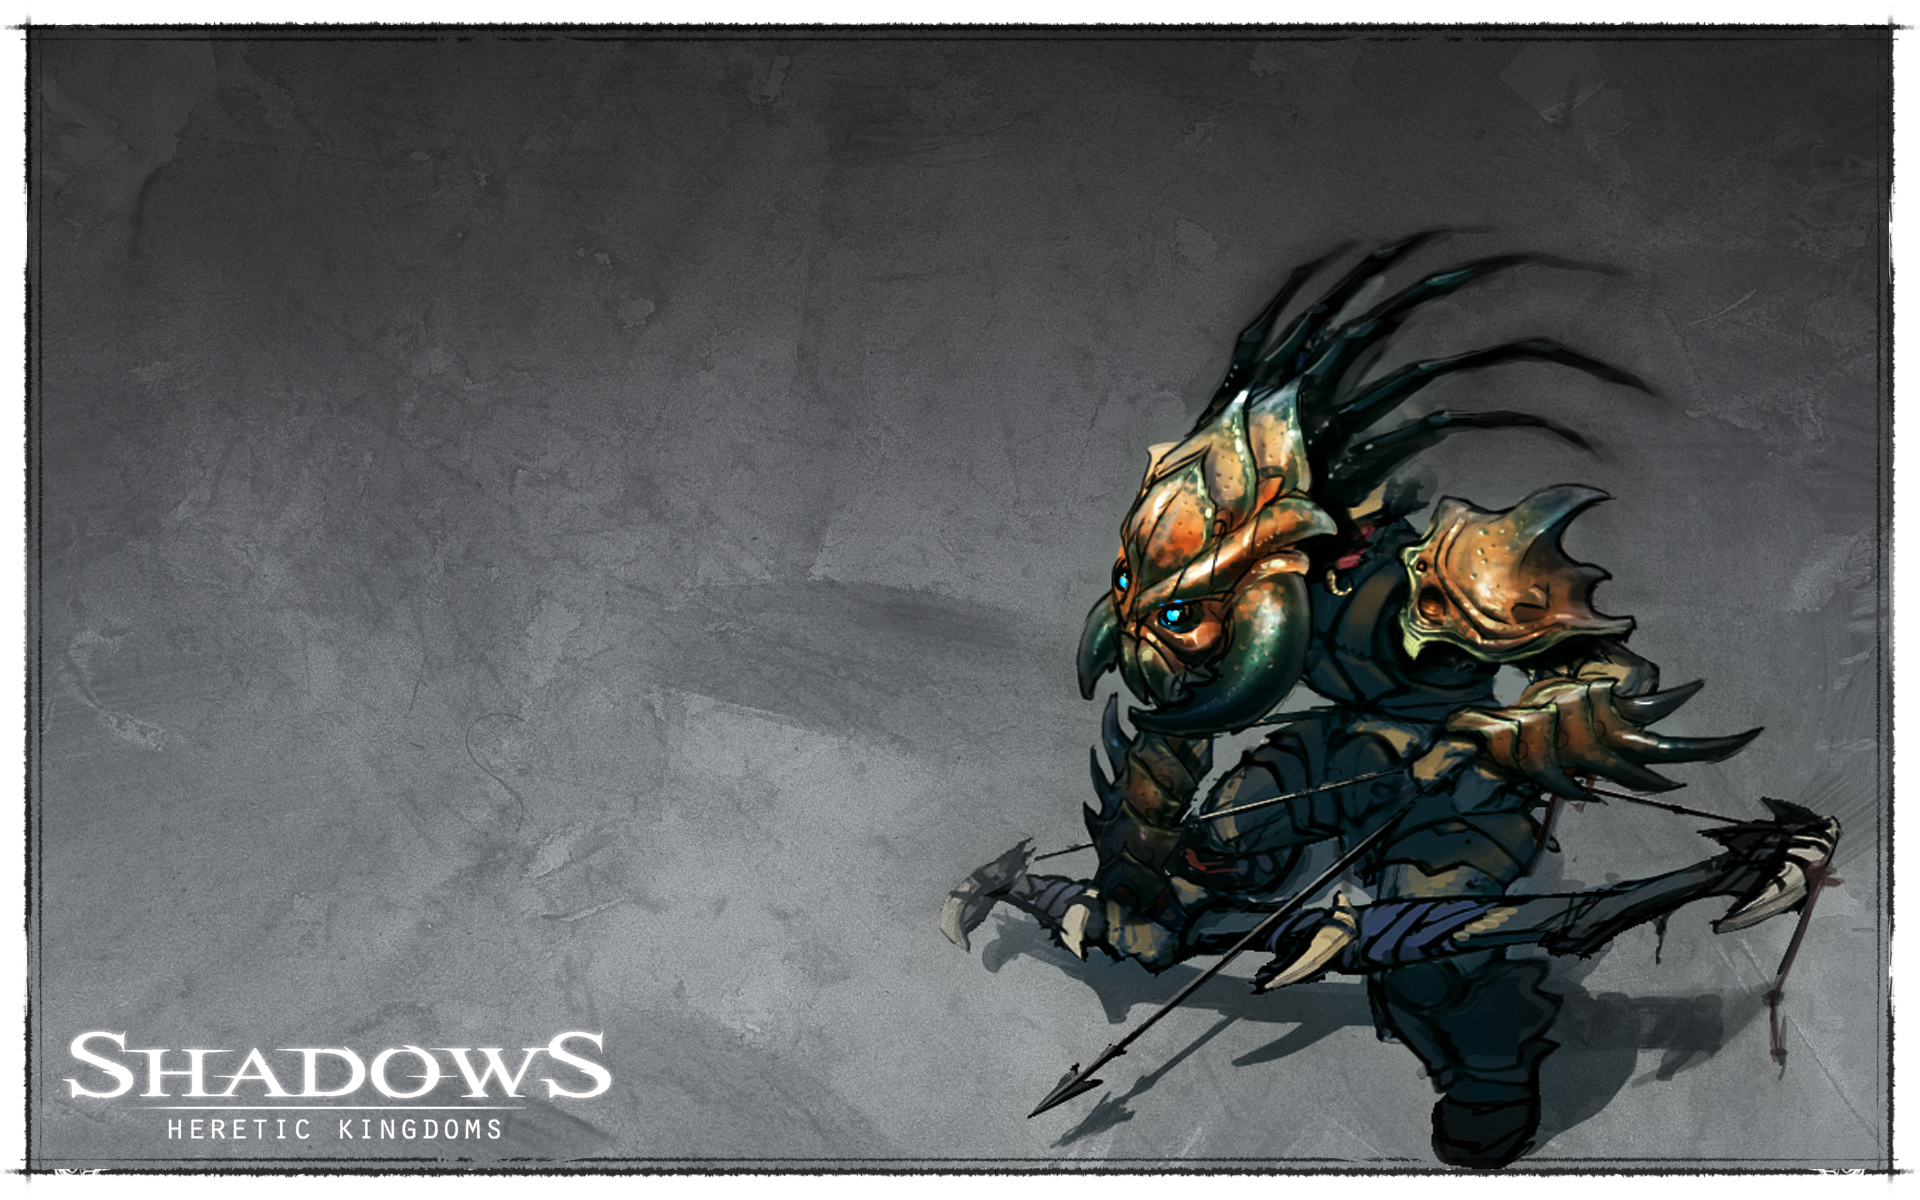 Shadows: heretic kingdoms book one devourer of souls скачать.